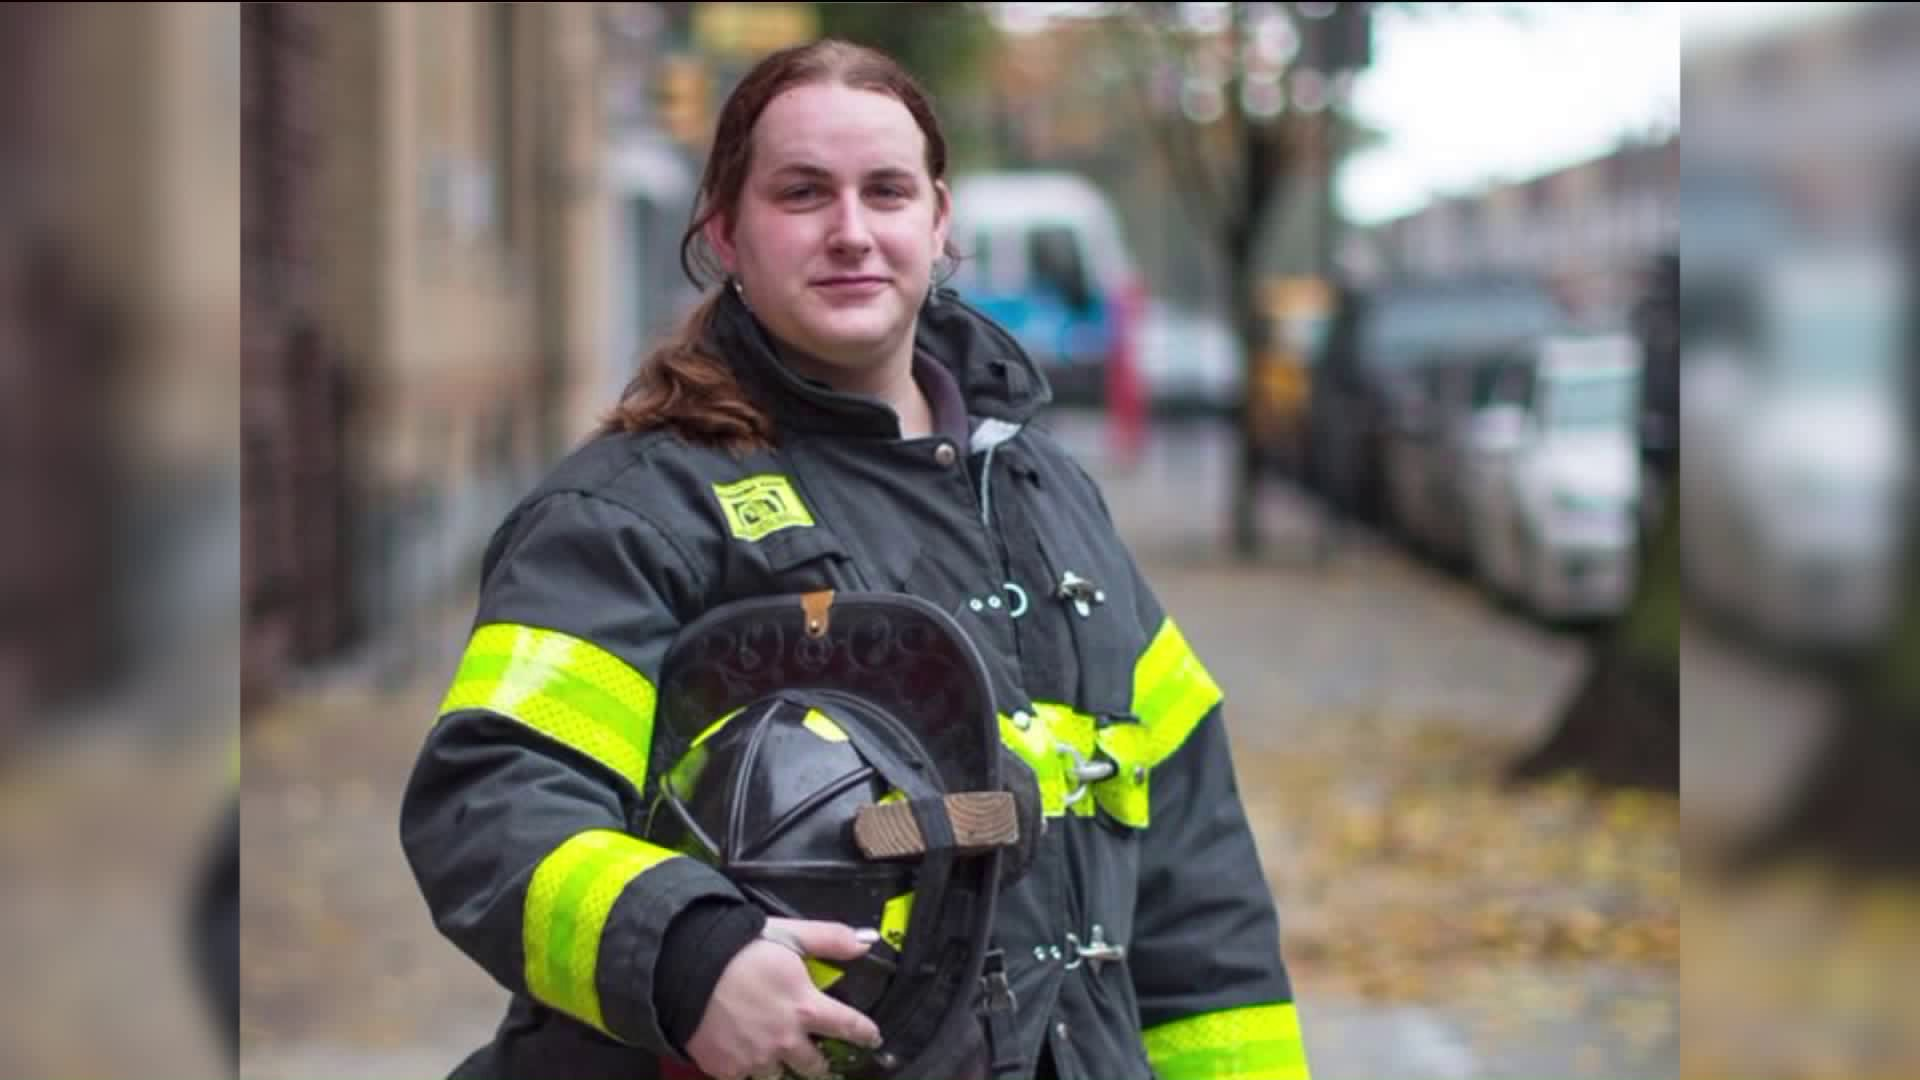 FDNY's First Openly Transgender Firefighter to Lead NYC Pride March